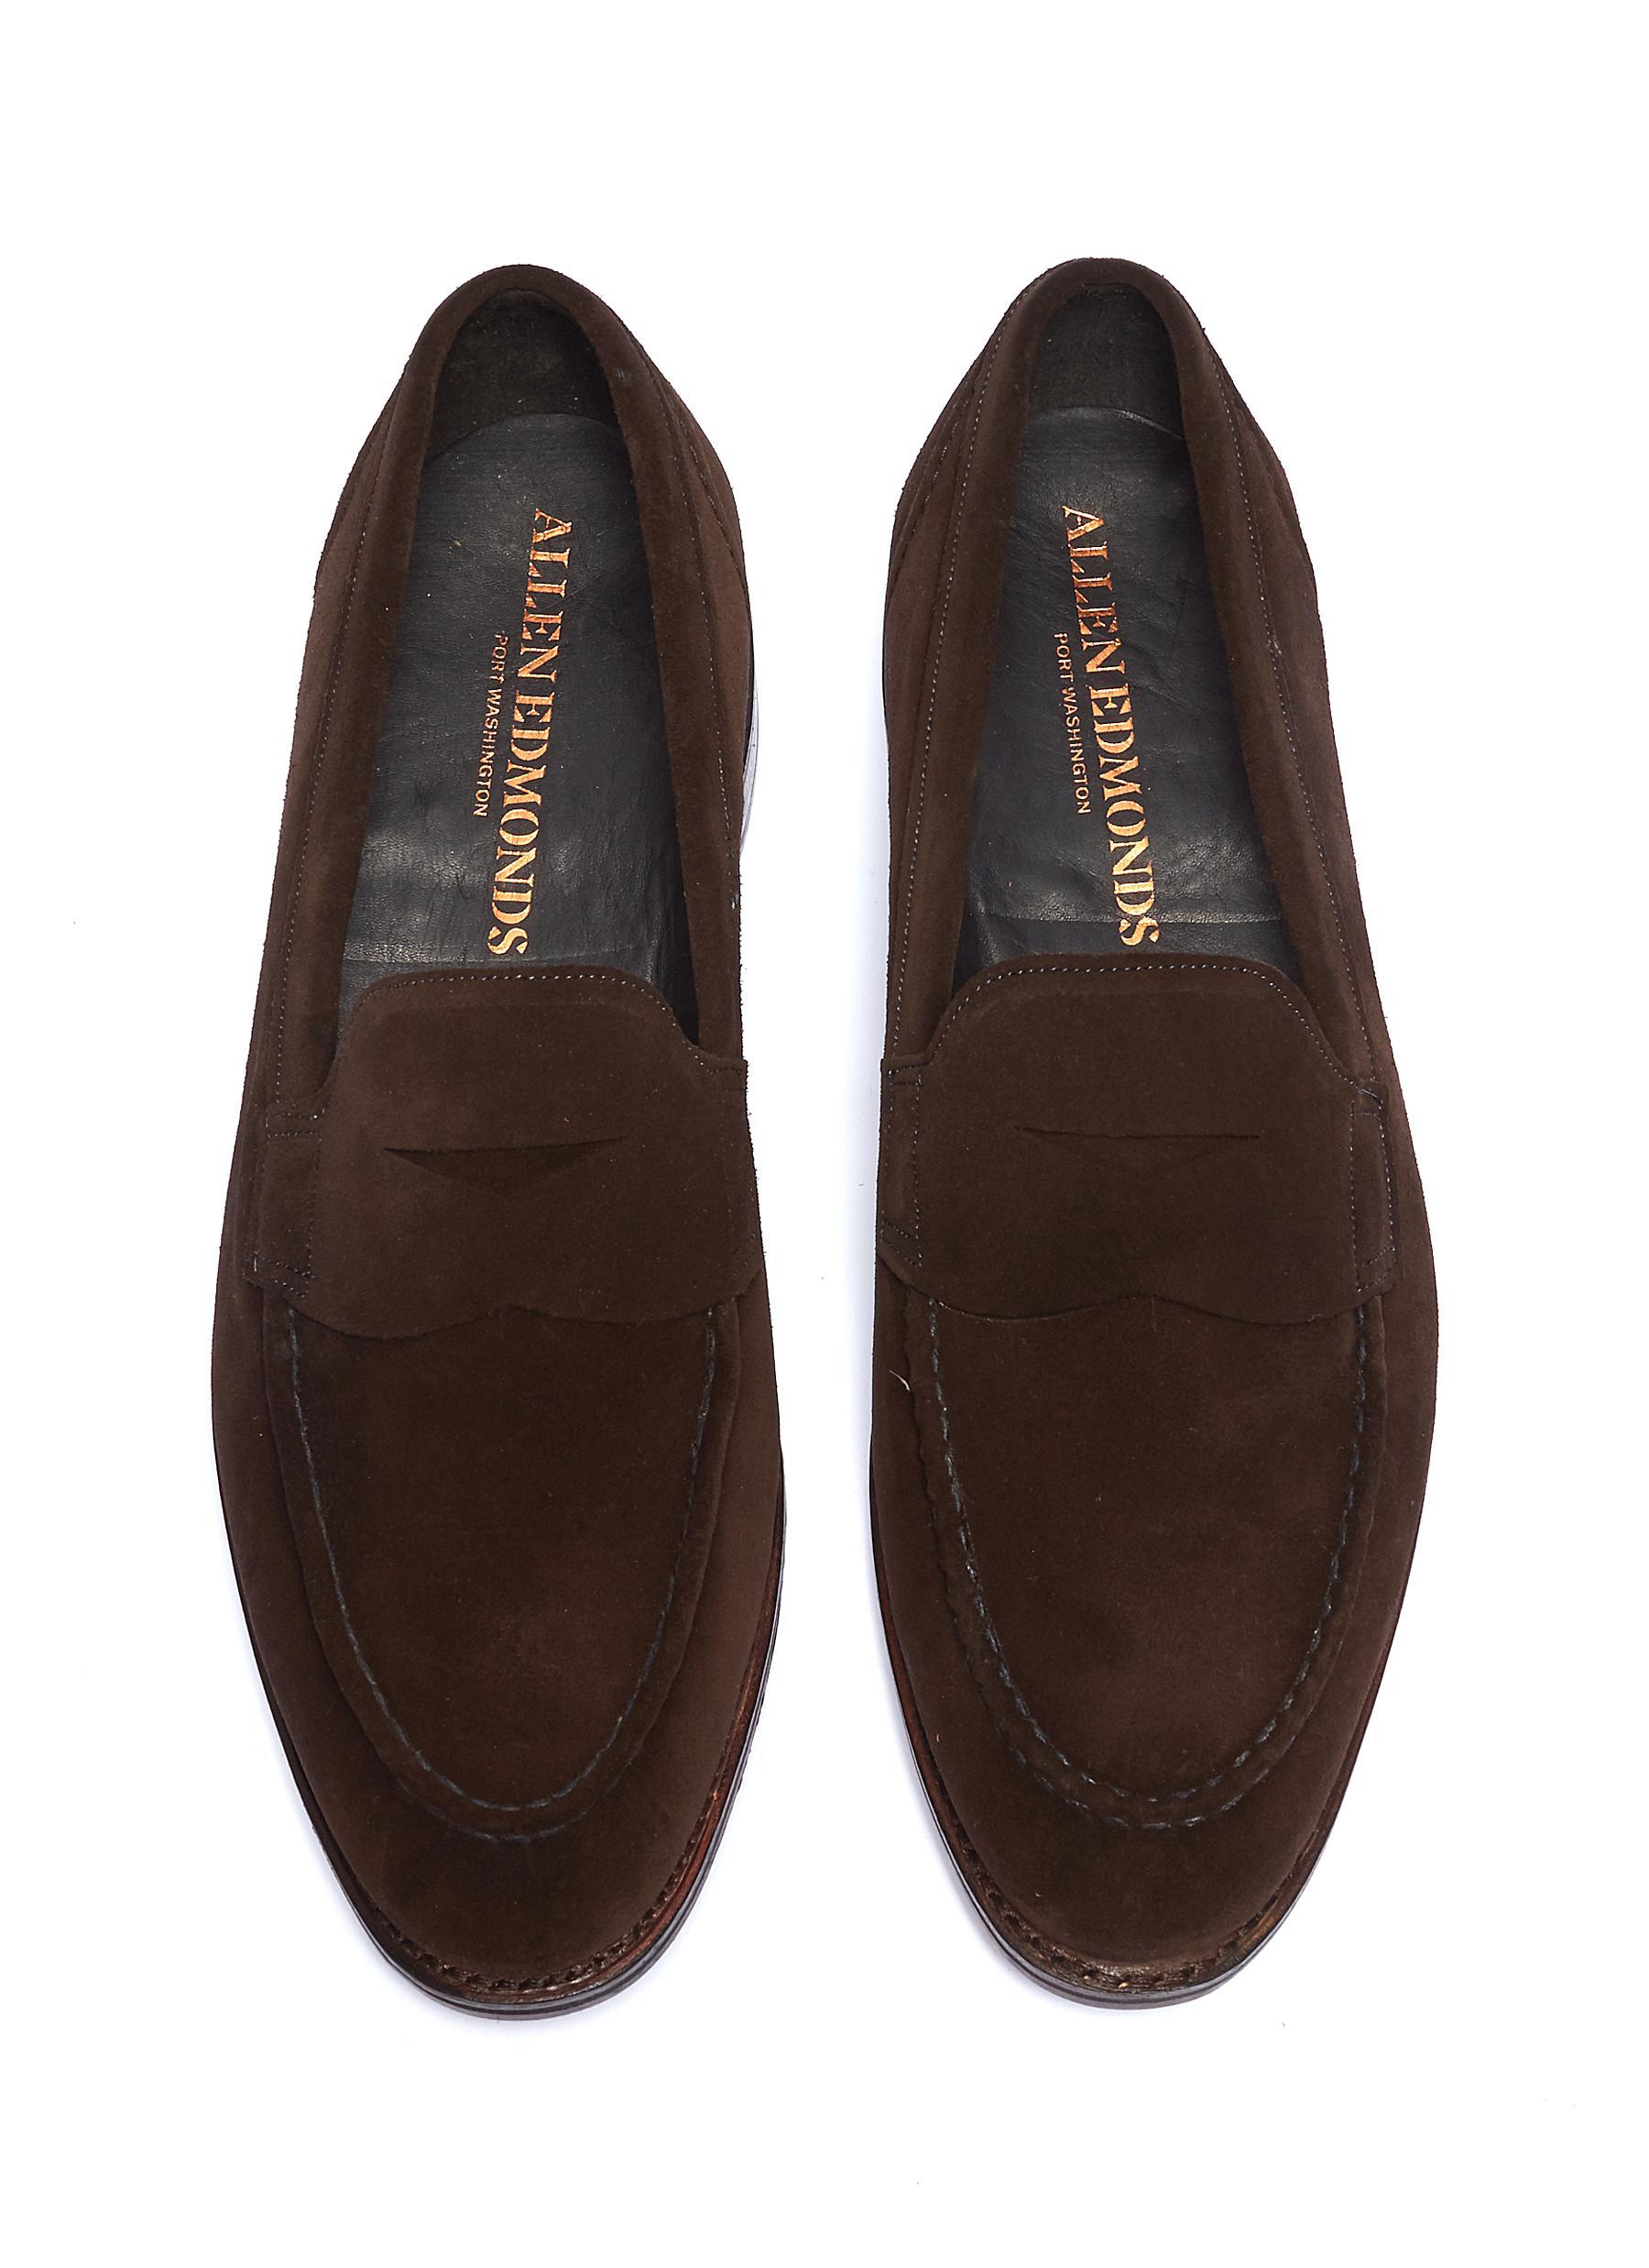 3c9ef7ff60c Allen Edmonds - Brown  mercer Street  Suede Penny Loafers for Men - Lyst.  View fullscreen